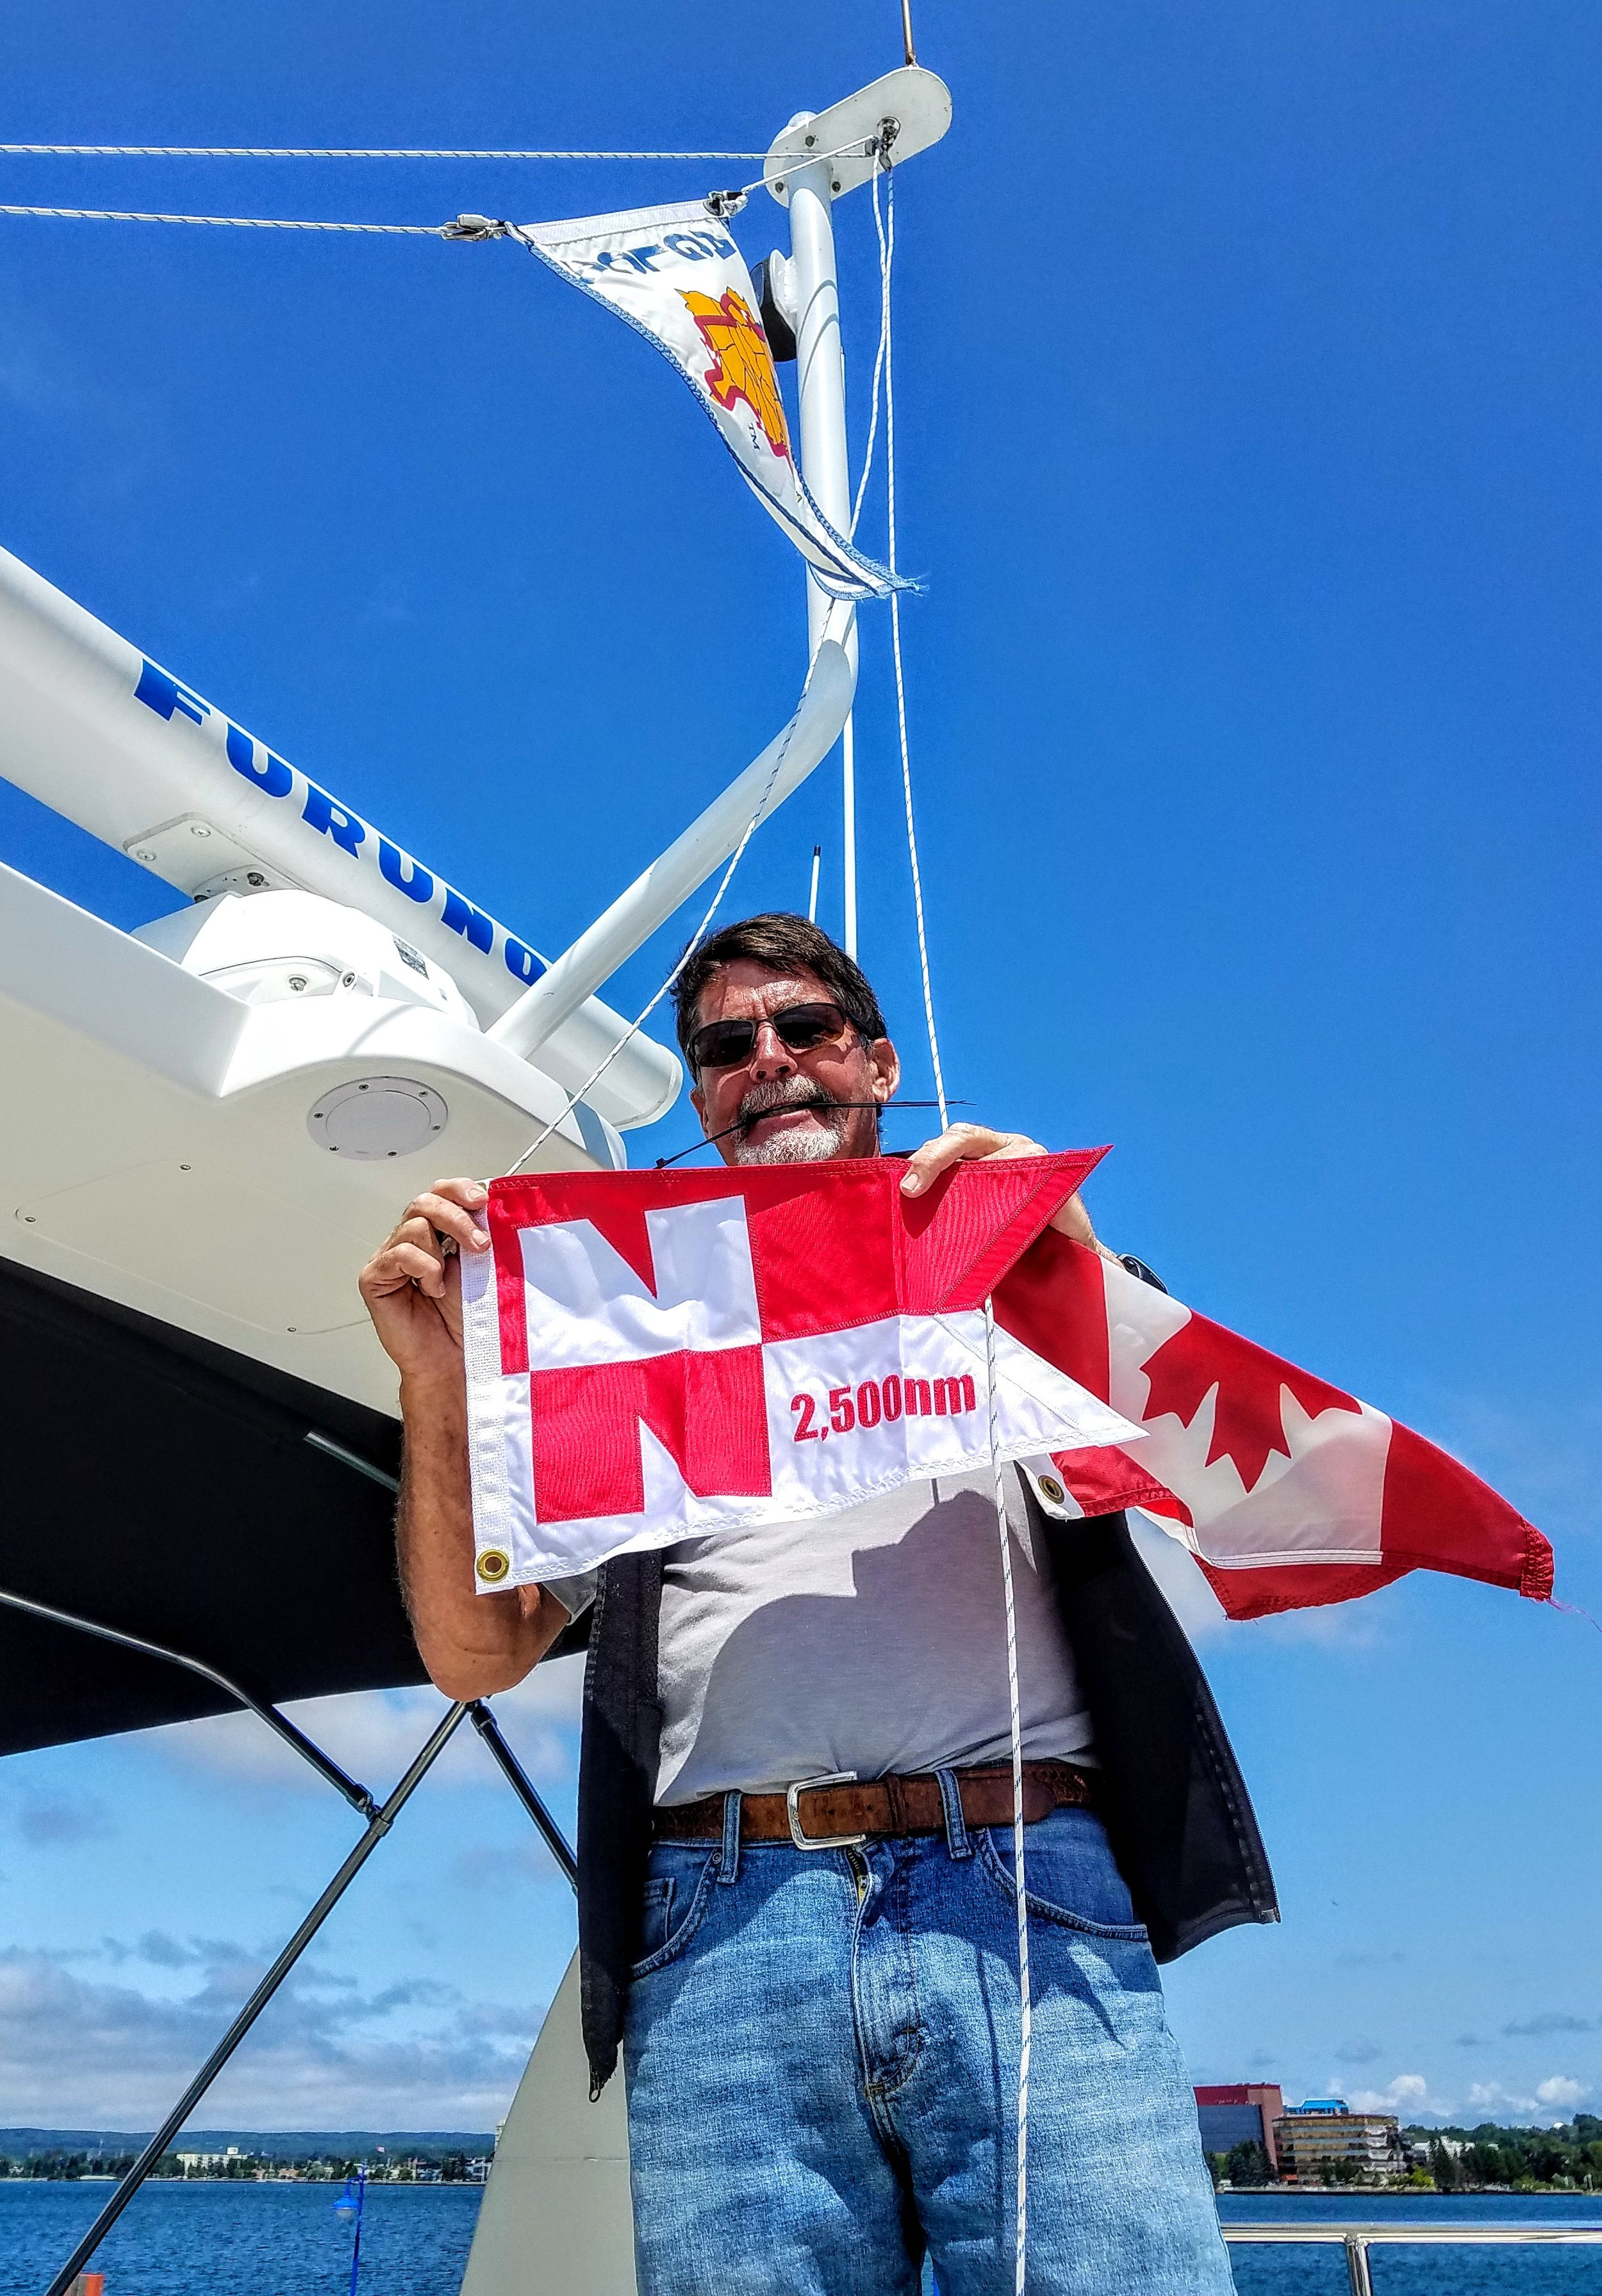 Larry replaced our Canadian courtesy flag with our Nordhavn 2,500 nautical mile pennant flag after re-entering the U.S. at Sault Ste. Marie, MI in the George Kemp marina.